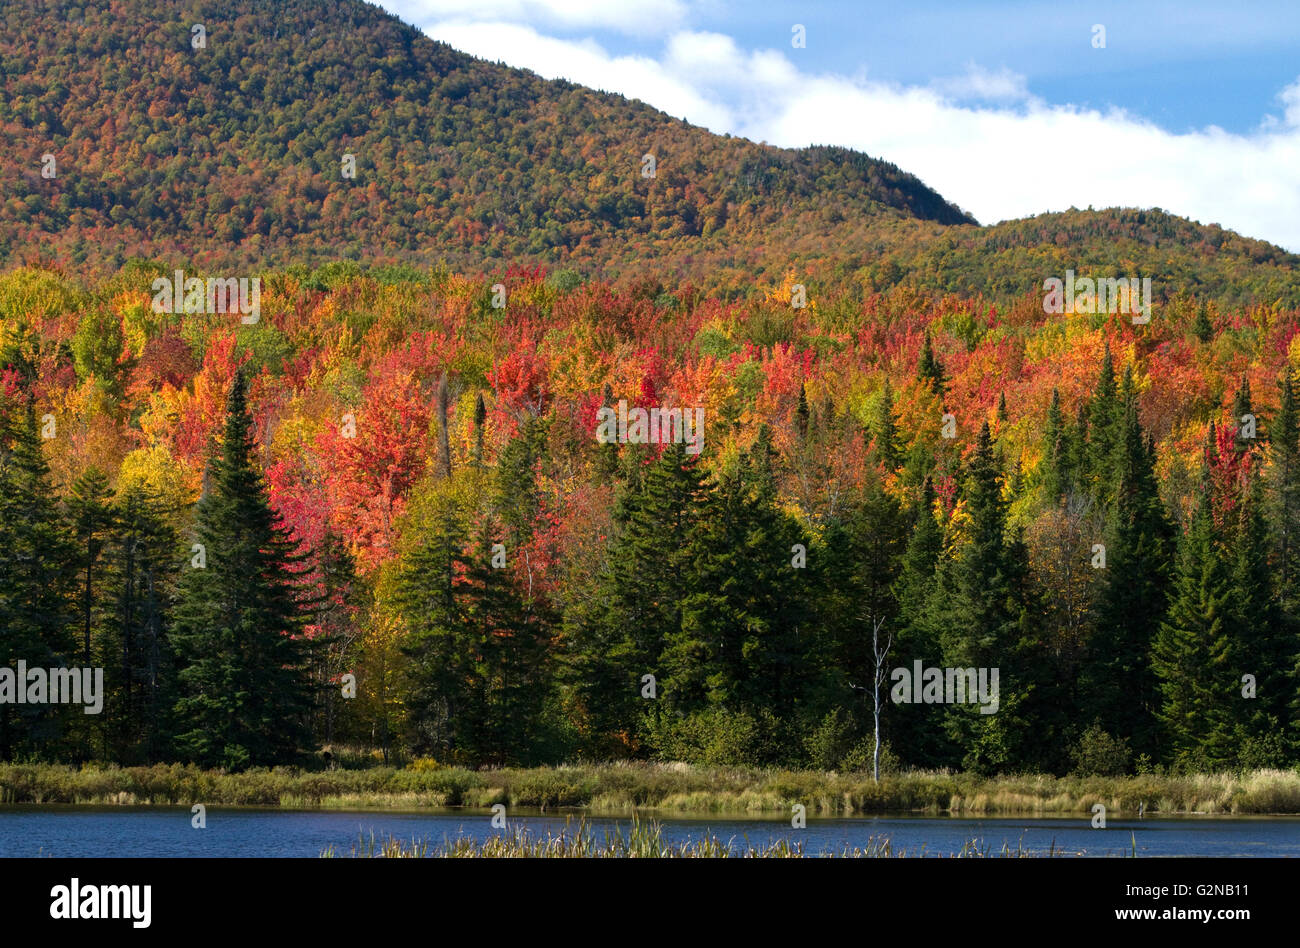 Fall foliage at McAllister Pond in Orleans County, Vermont, USA. - Stock Image